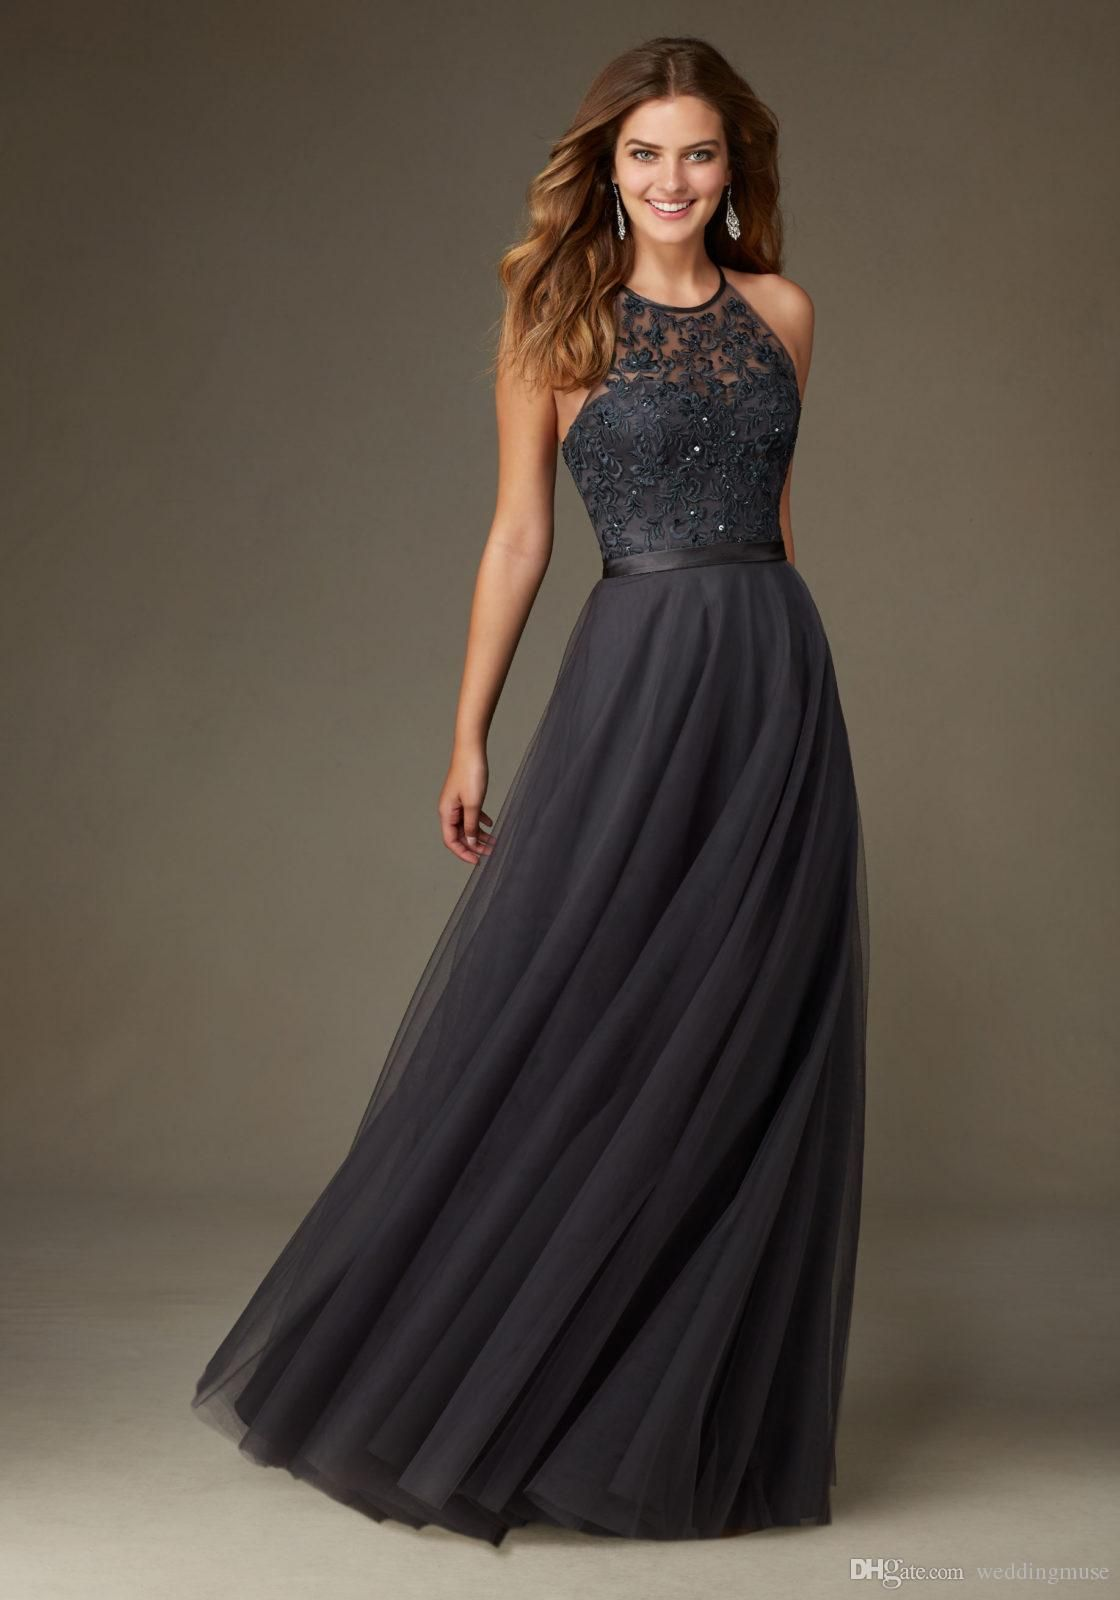 Cheap 2017 charcoal gray bridesmaid dresses long halter sleeveless cheap 2017 charcoal gray bridesmaid dresses long halter sleeveless a line appliques lace tulle junior bridesmaid dressesmaid of honor dress as low as ombrellifo Gallery